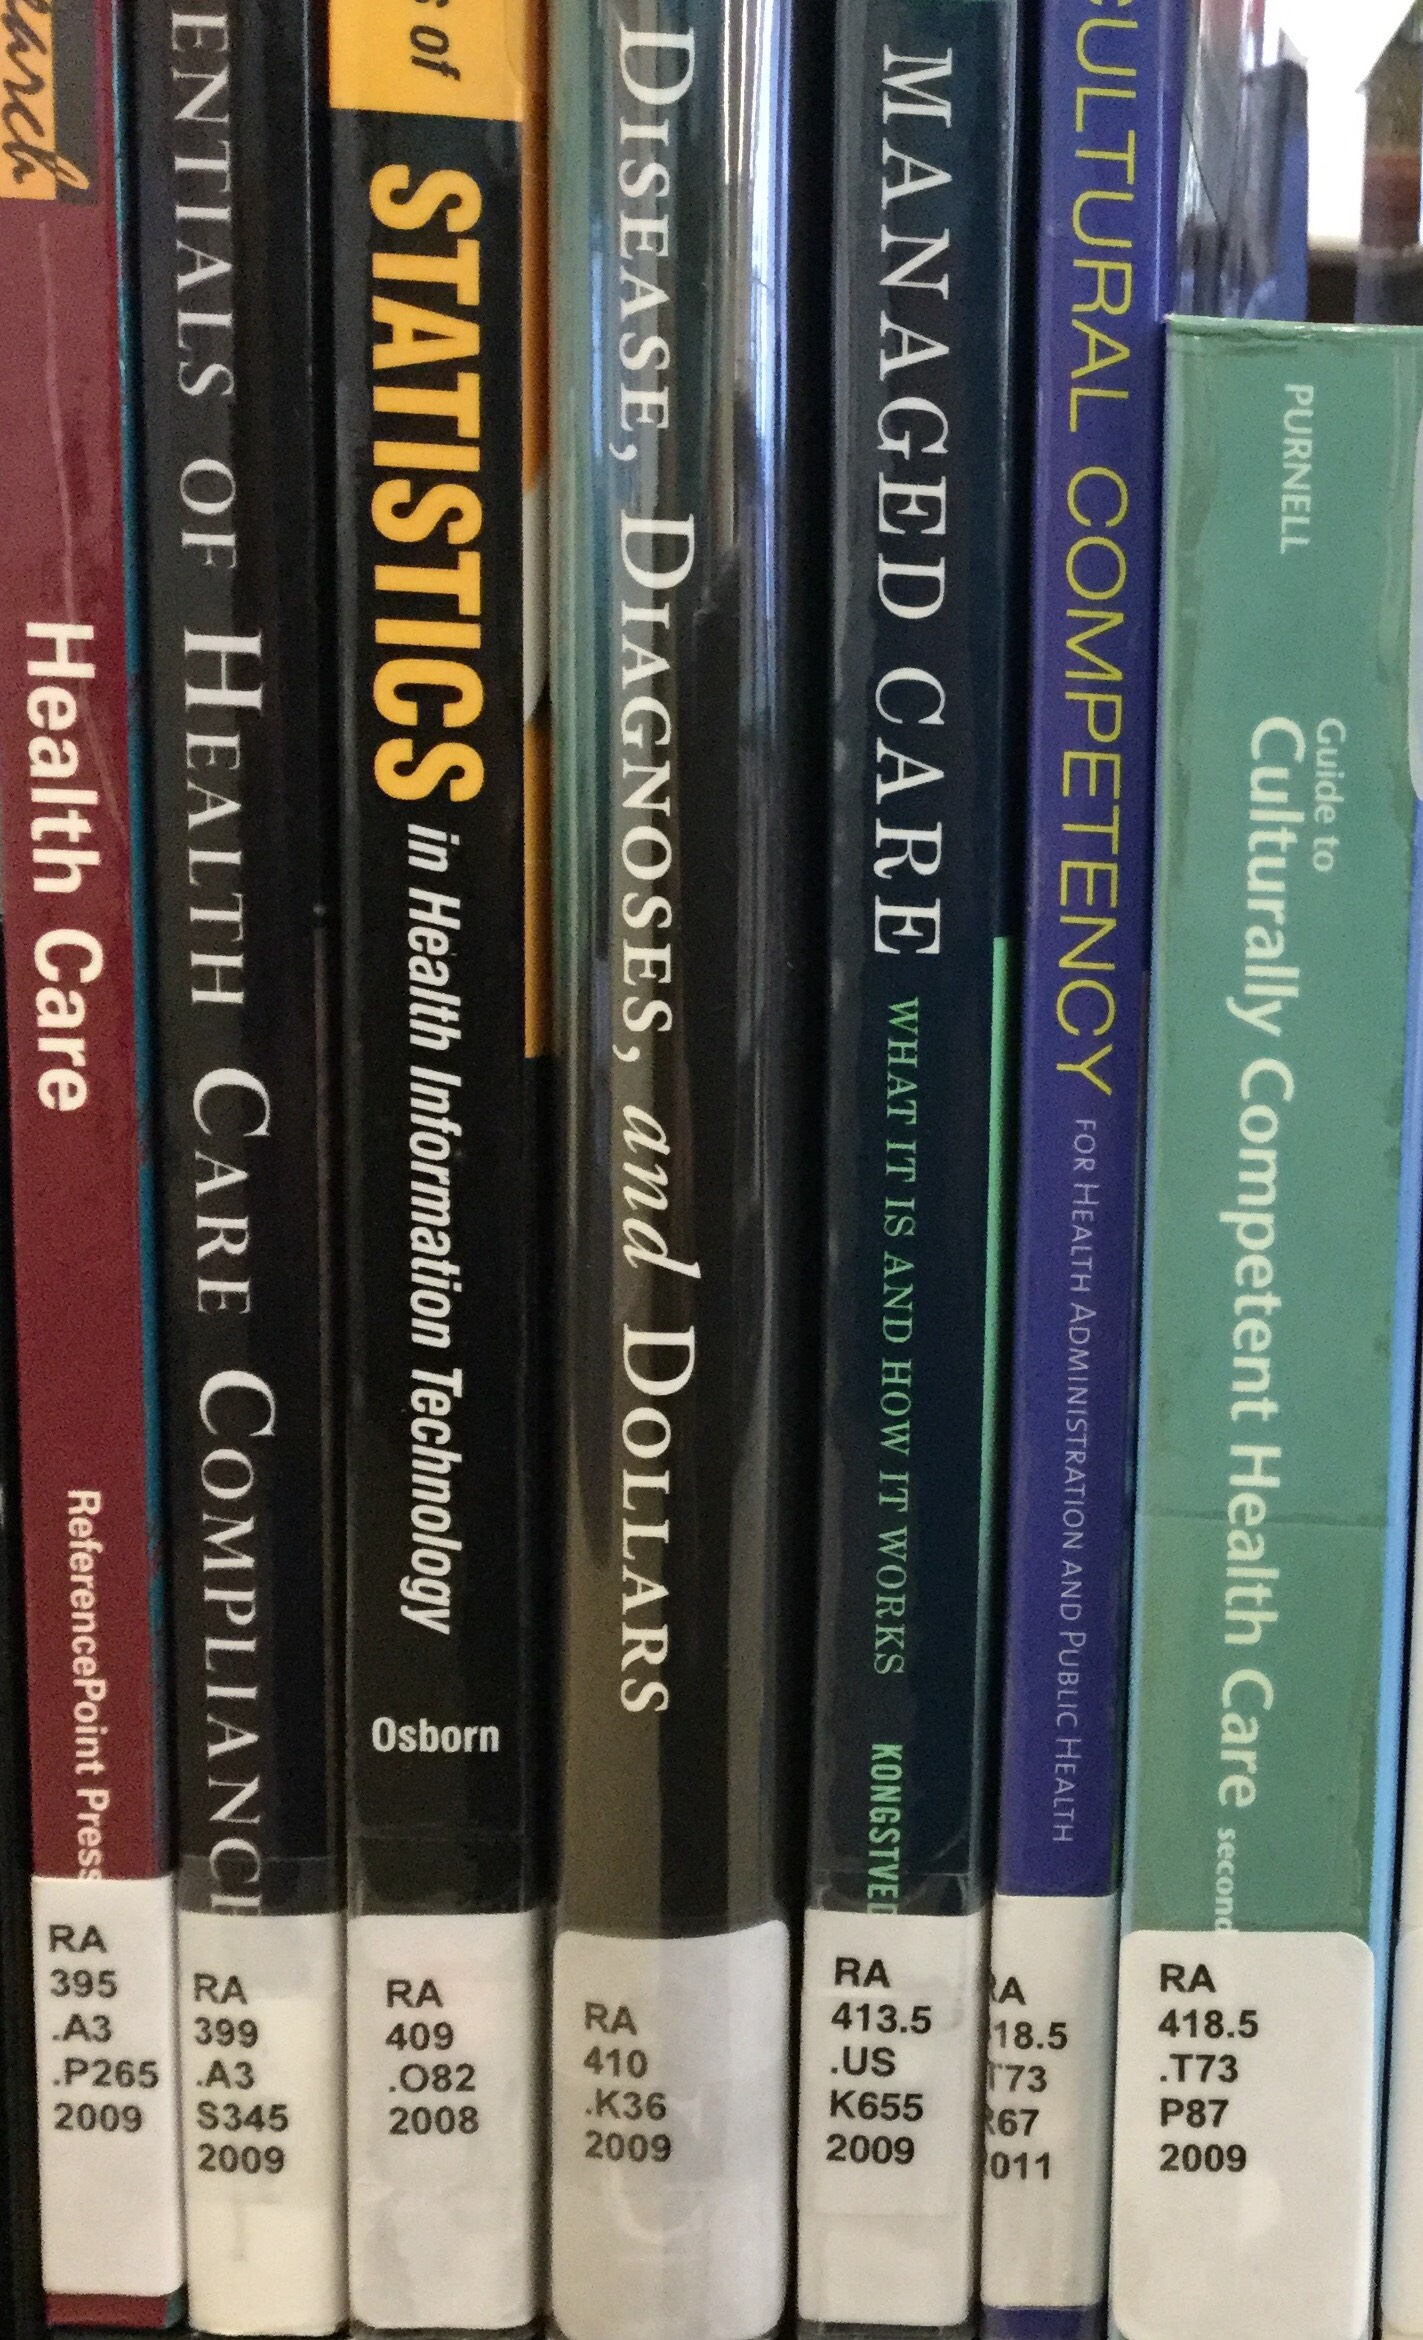 Image photograph of library books on a shelf